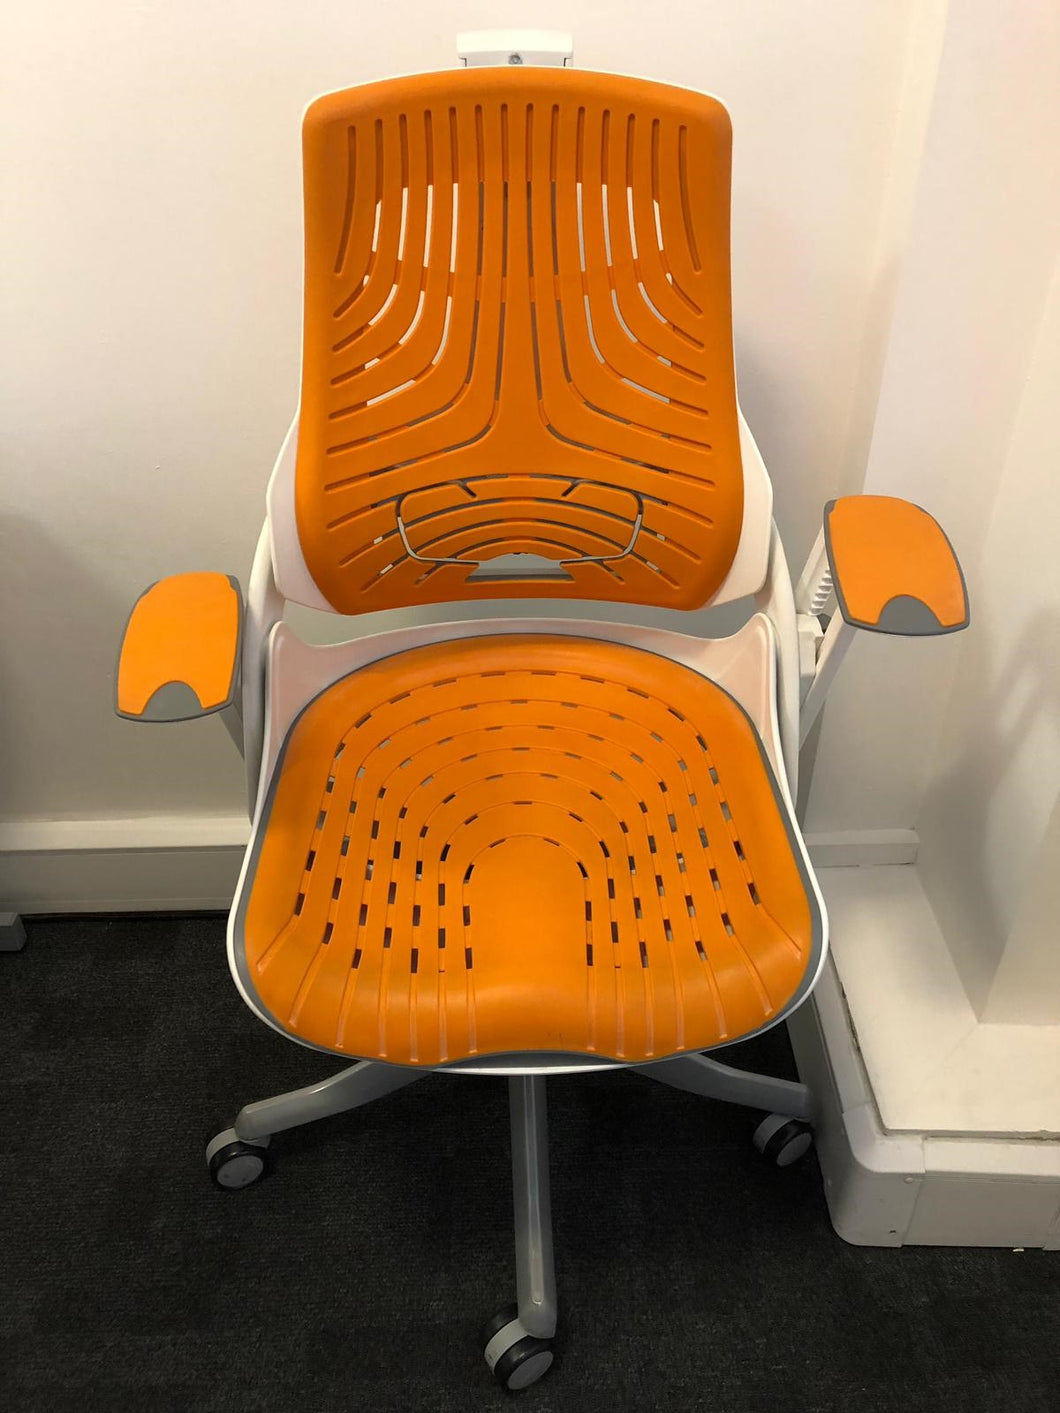 Merryfair Wau Specialist Office Chair - Flogit2us.com